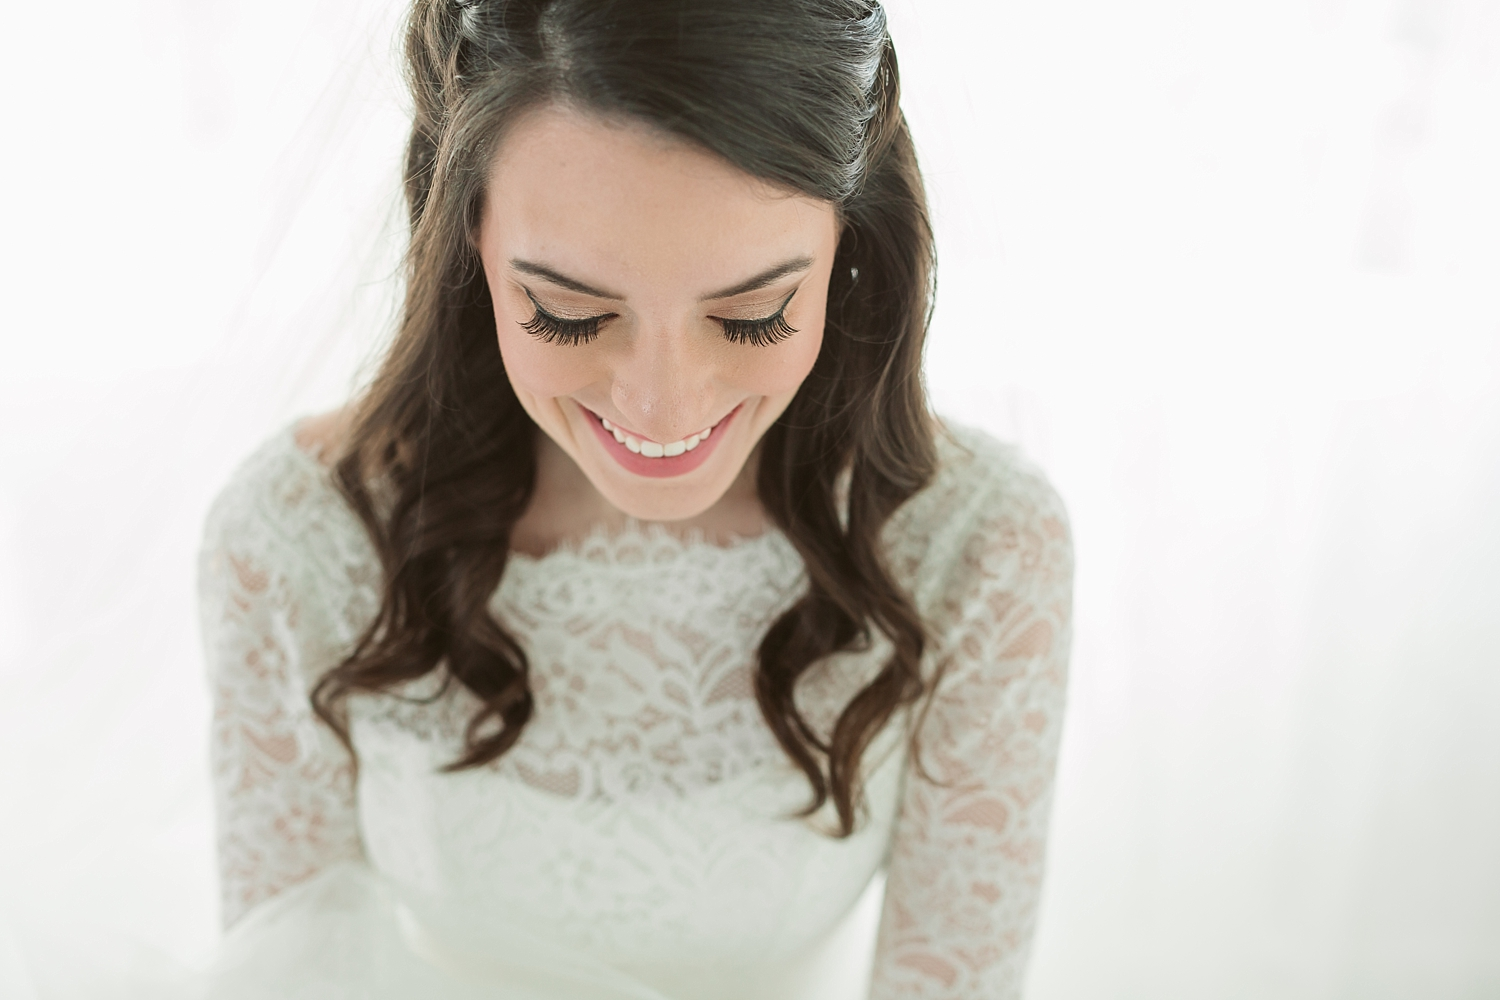 tampa_bridal_session_0011.jpg